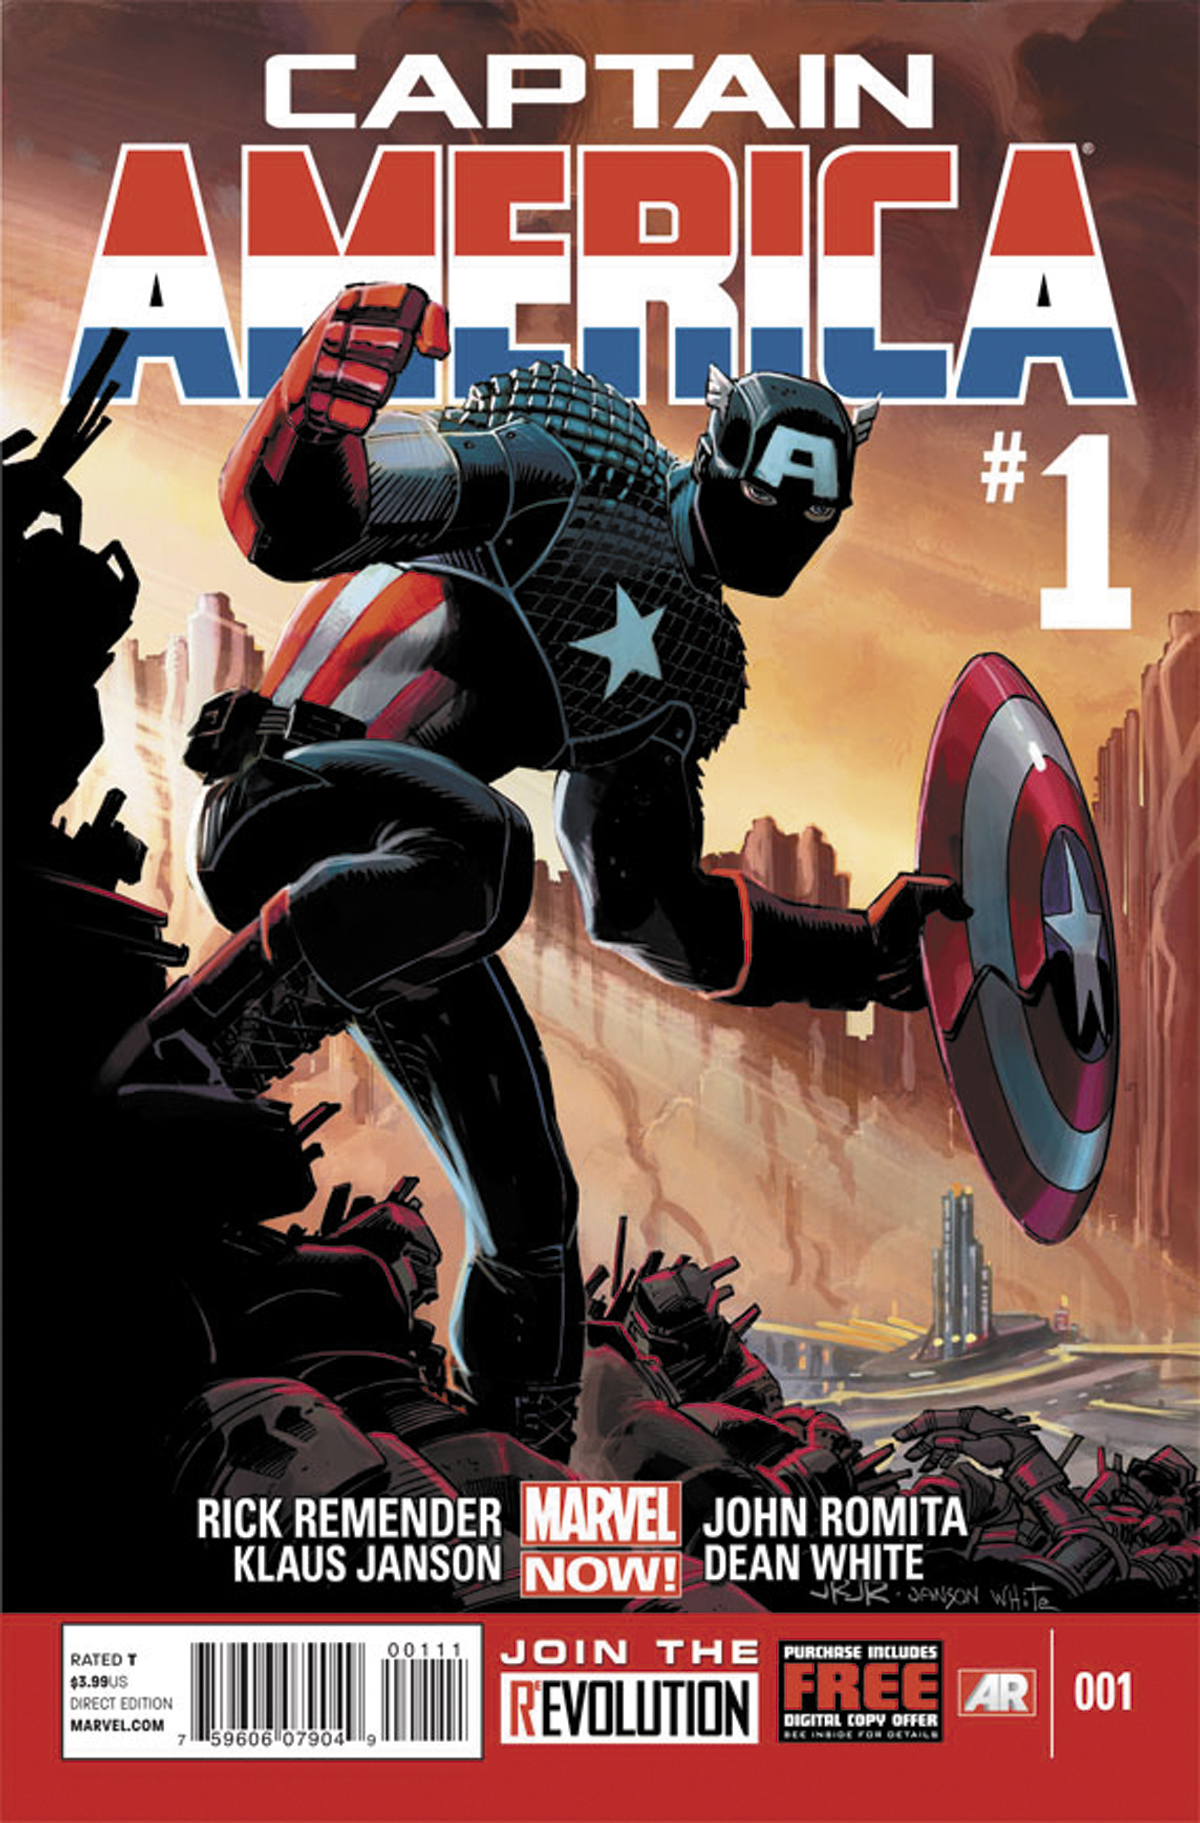 CAPTAIN AMERICA #1 NOW